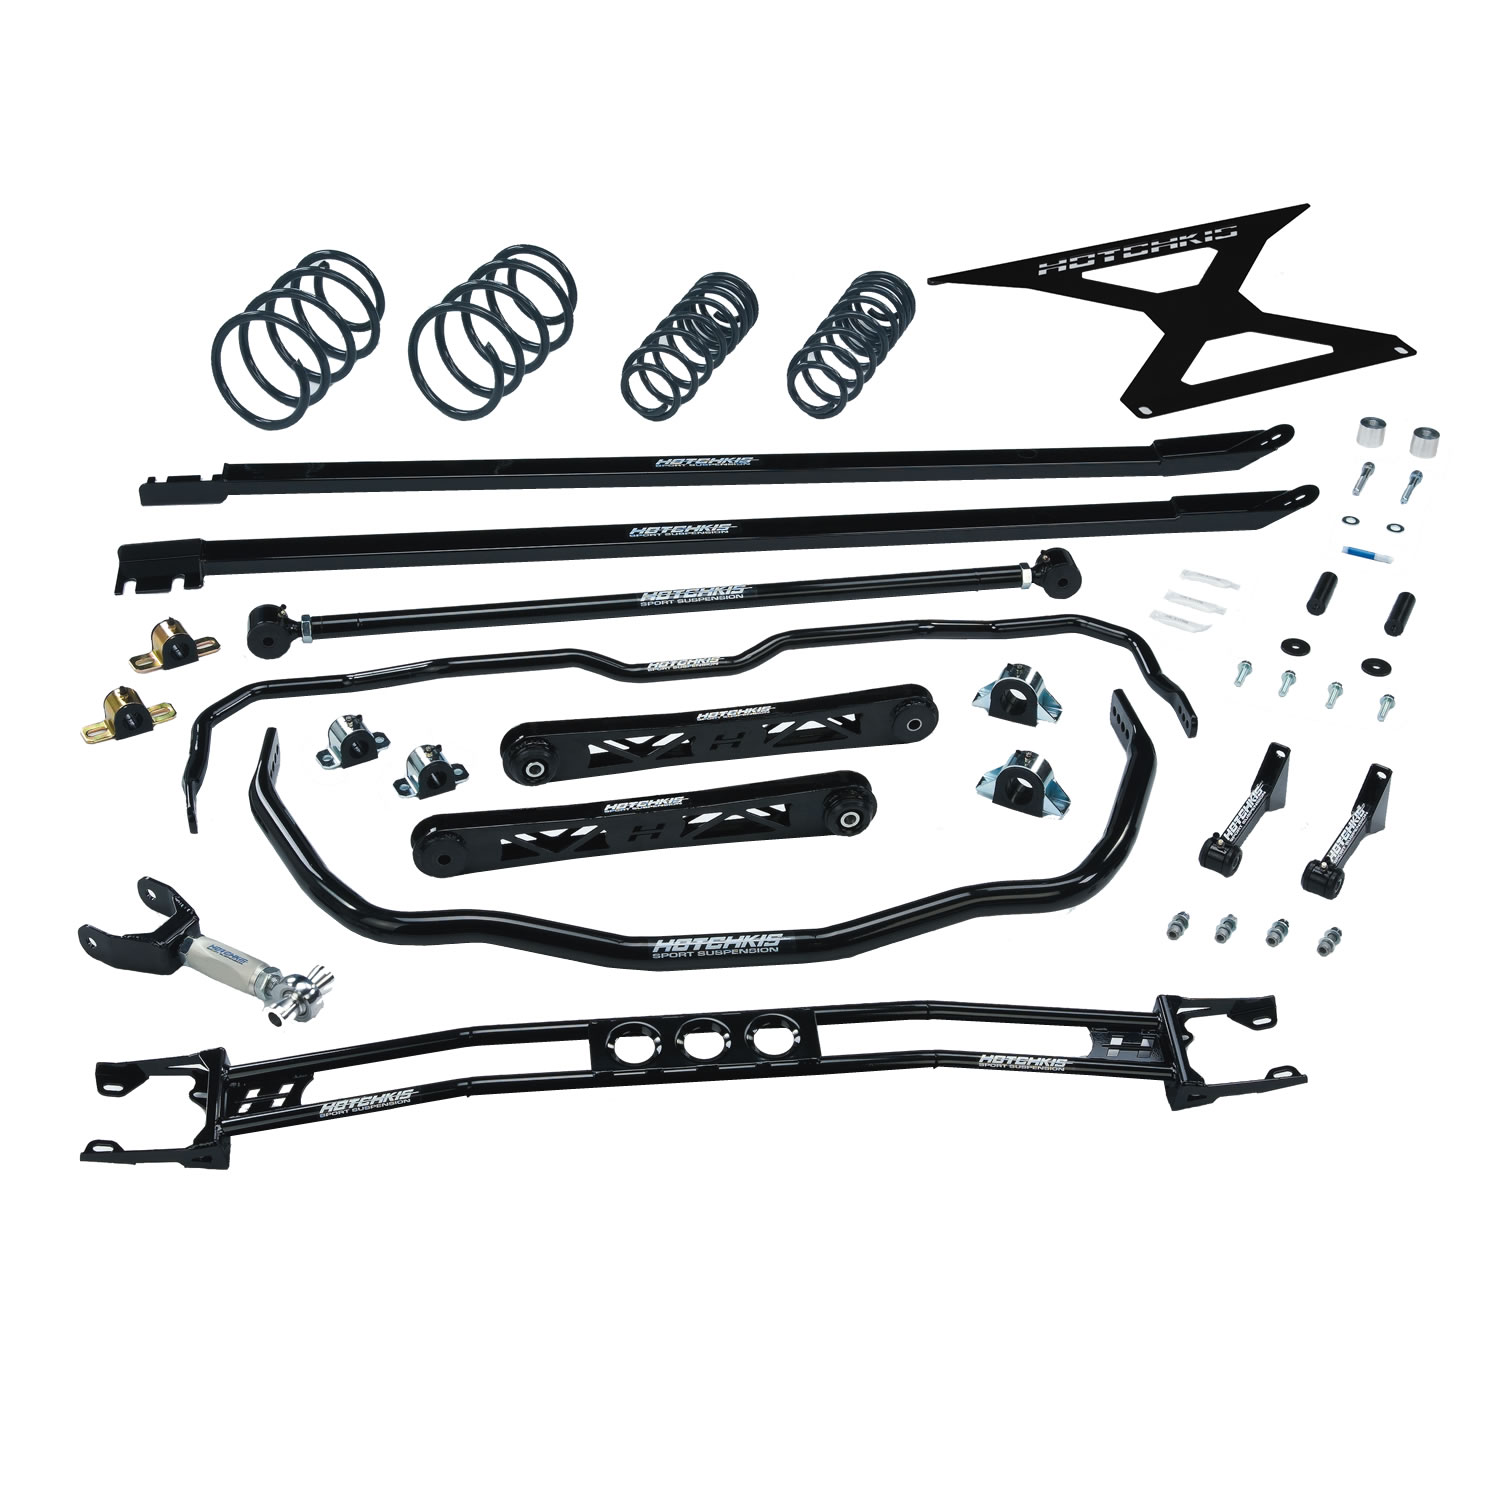 2011-2014 Ford Mustang V8 TVS Suspension System Stage 2, Manual Trans. Only